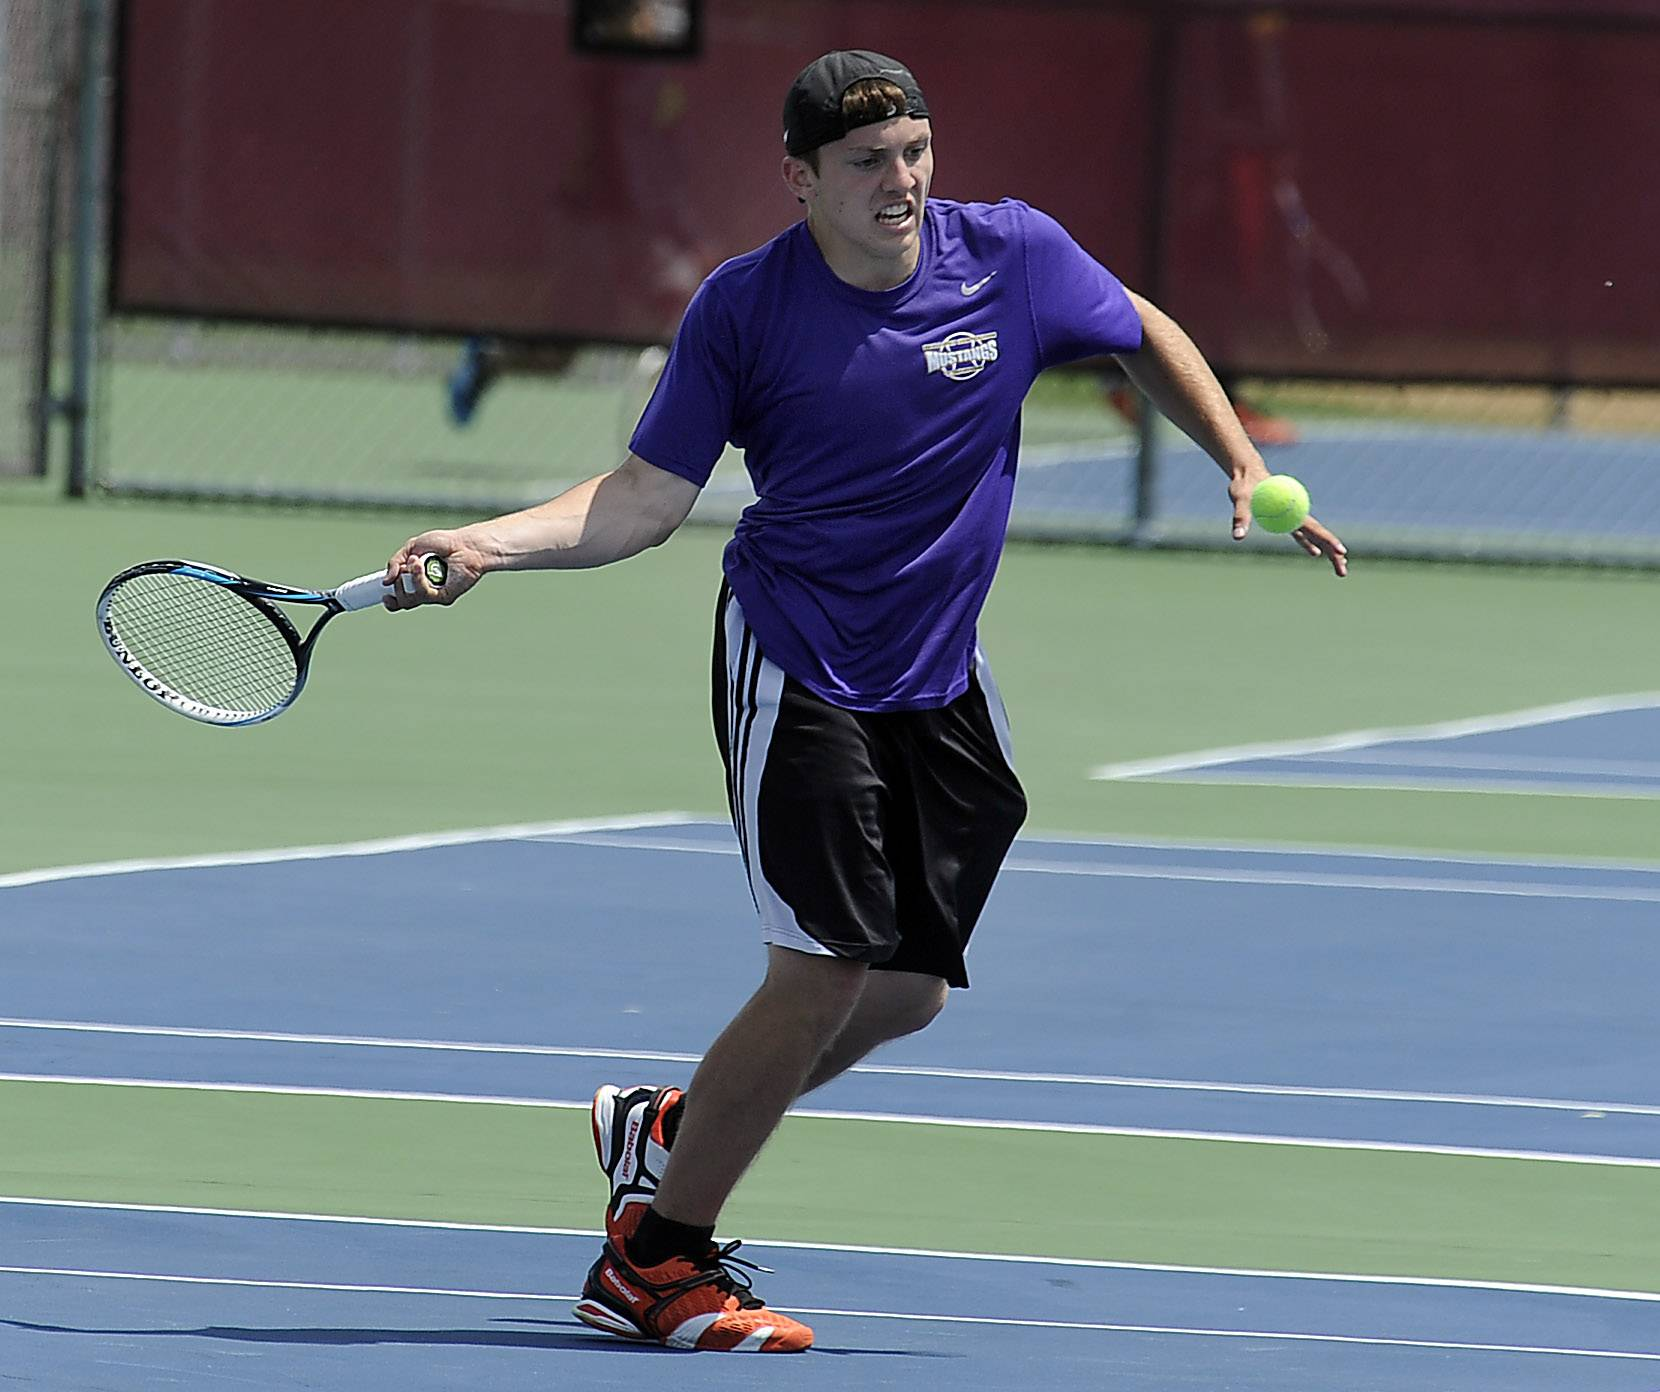 Rolling Meadows' Mack Galvin battles against Fremd's Eric Pohl in a singles semifinal matchup during Saturday's Mid-Suburban League touranment at Schaumburg.